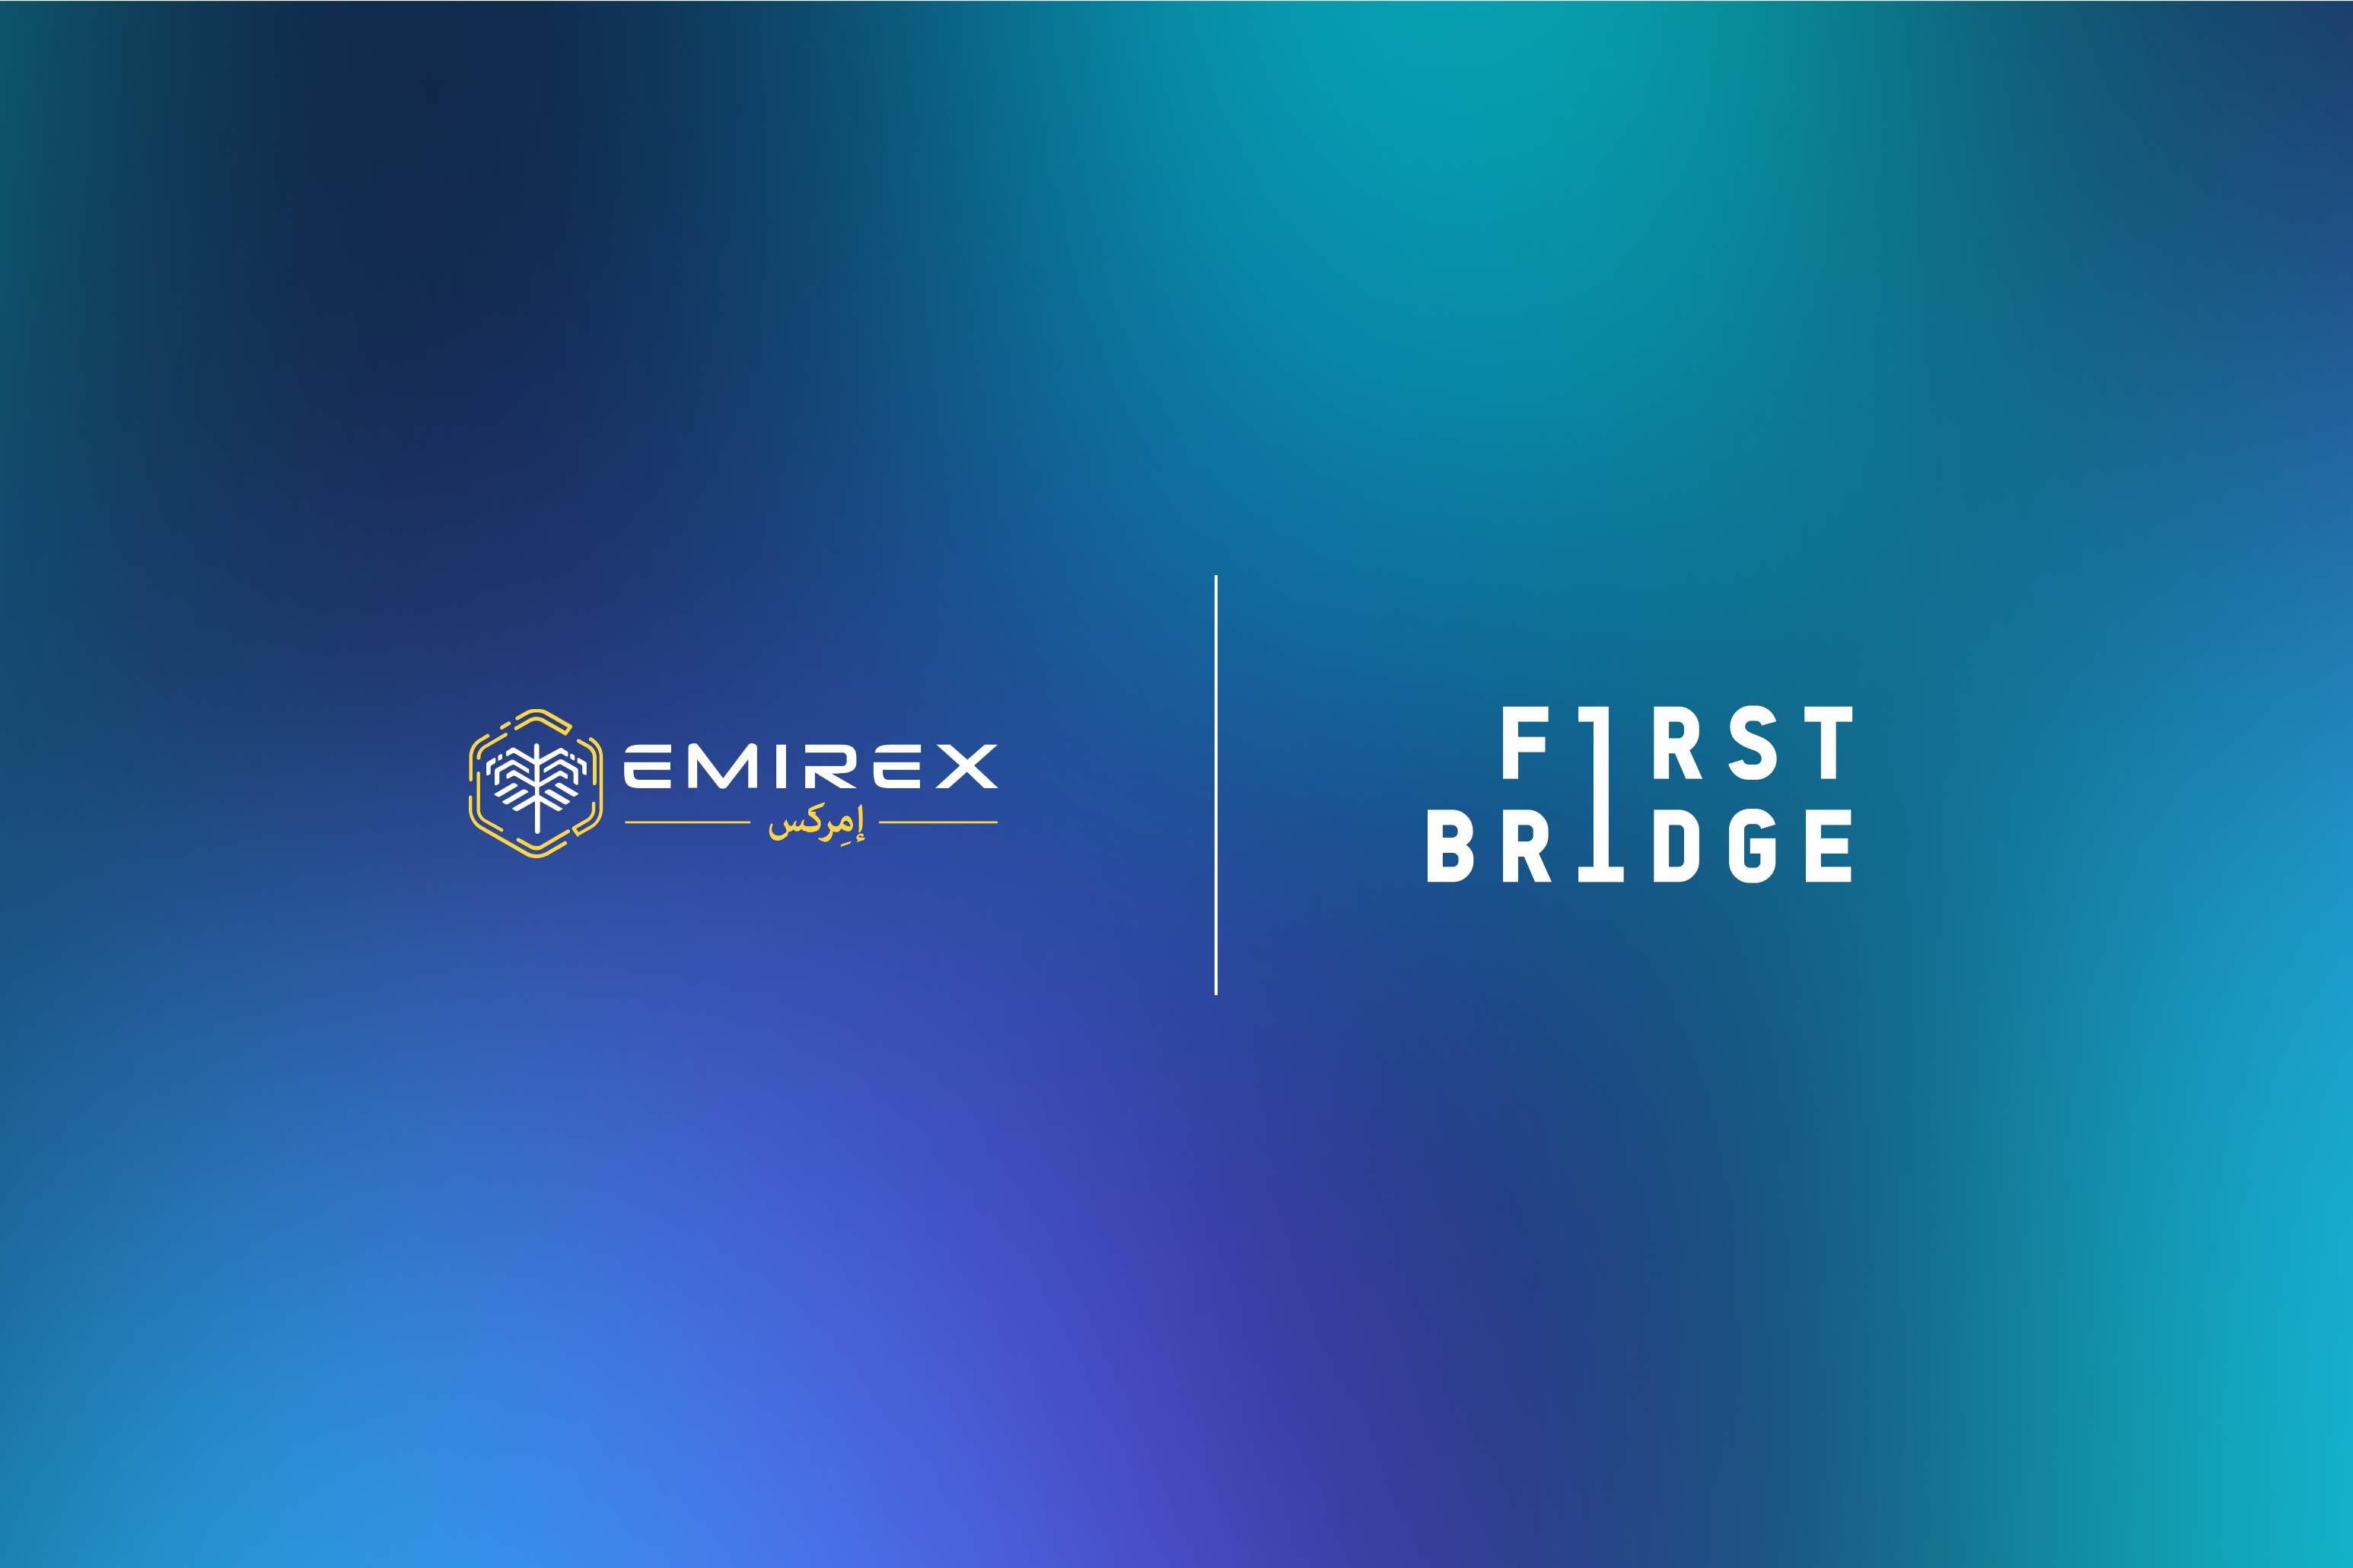 Emirex and First Bridge Announce Technological Partnership